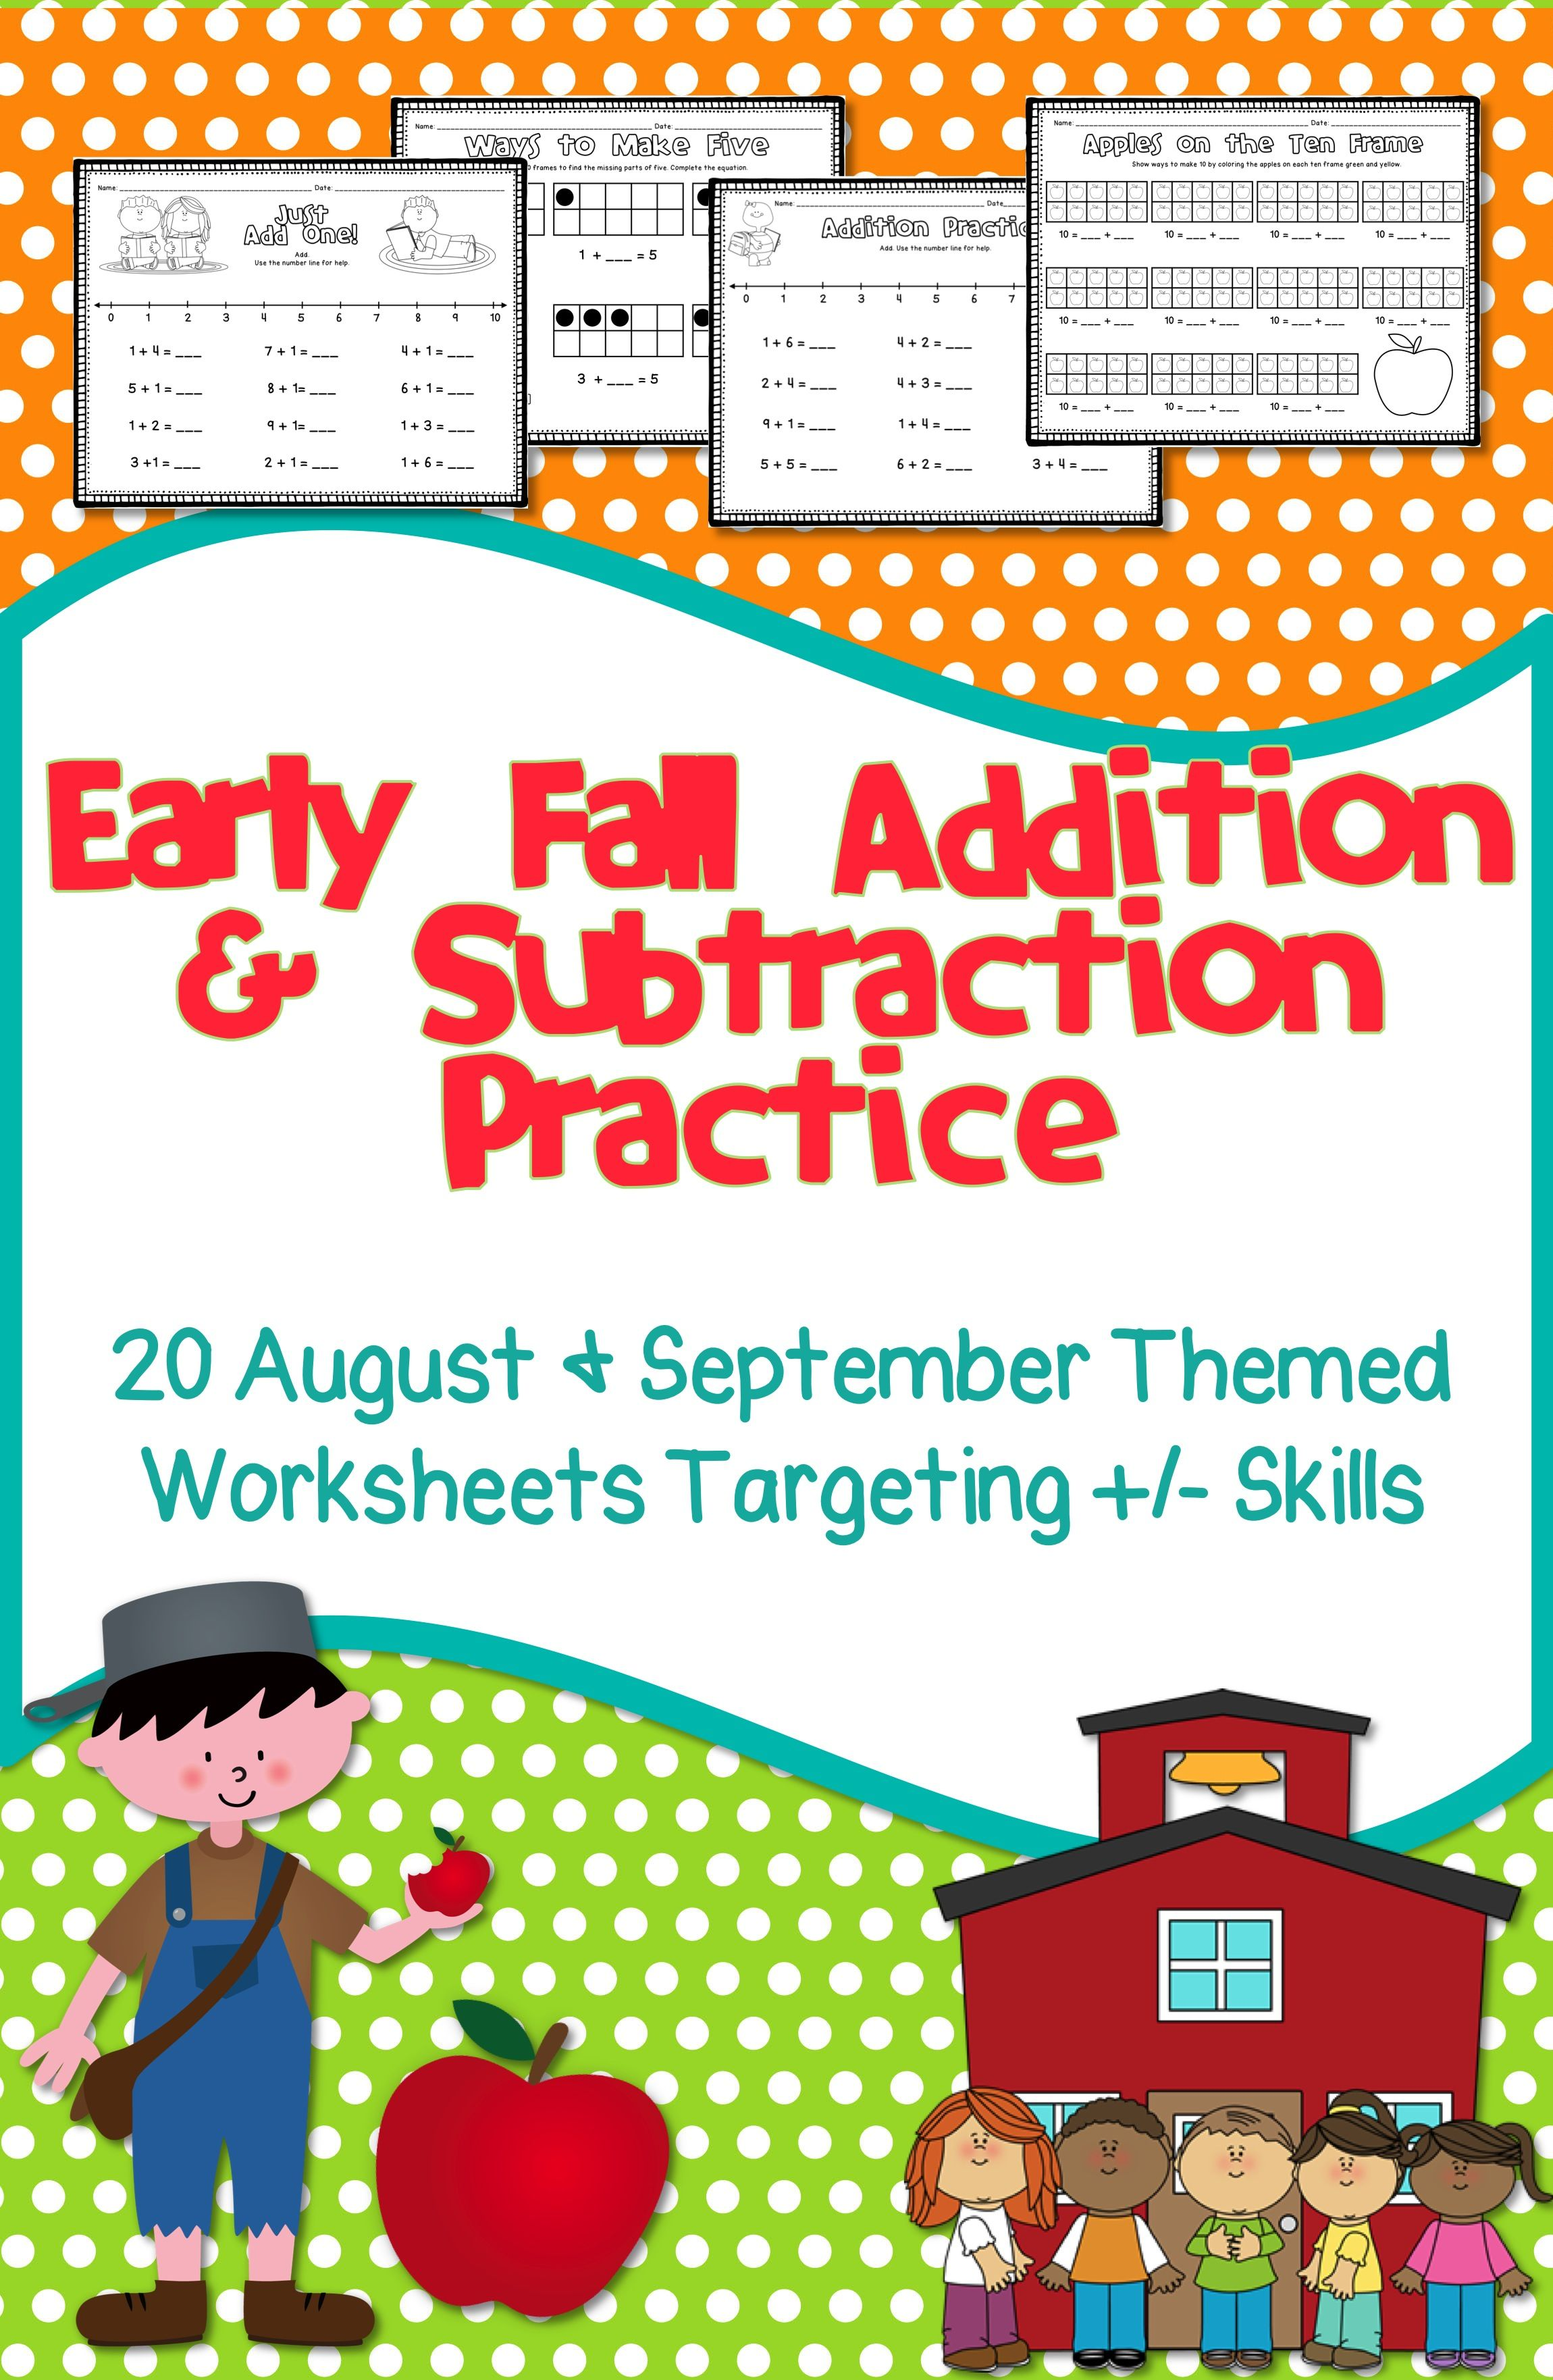 Fall Math Addition Subtraction Practice Subtraction Worksheets